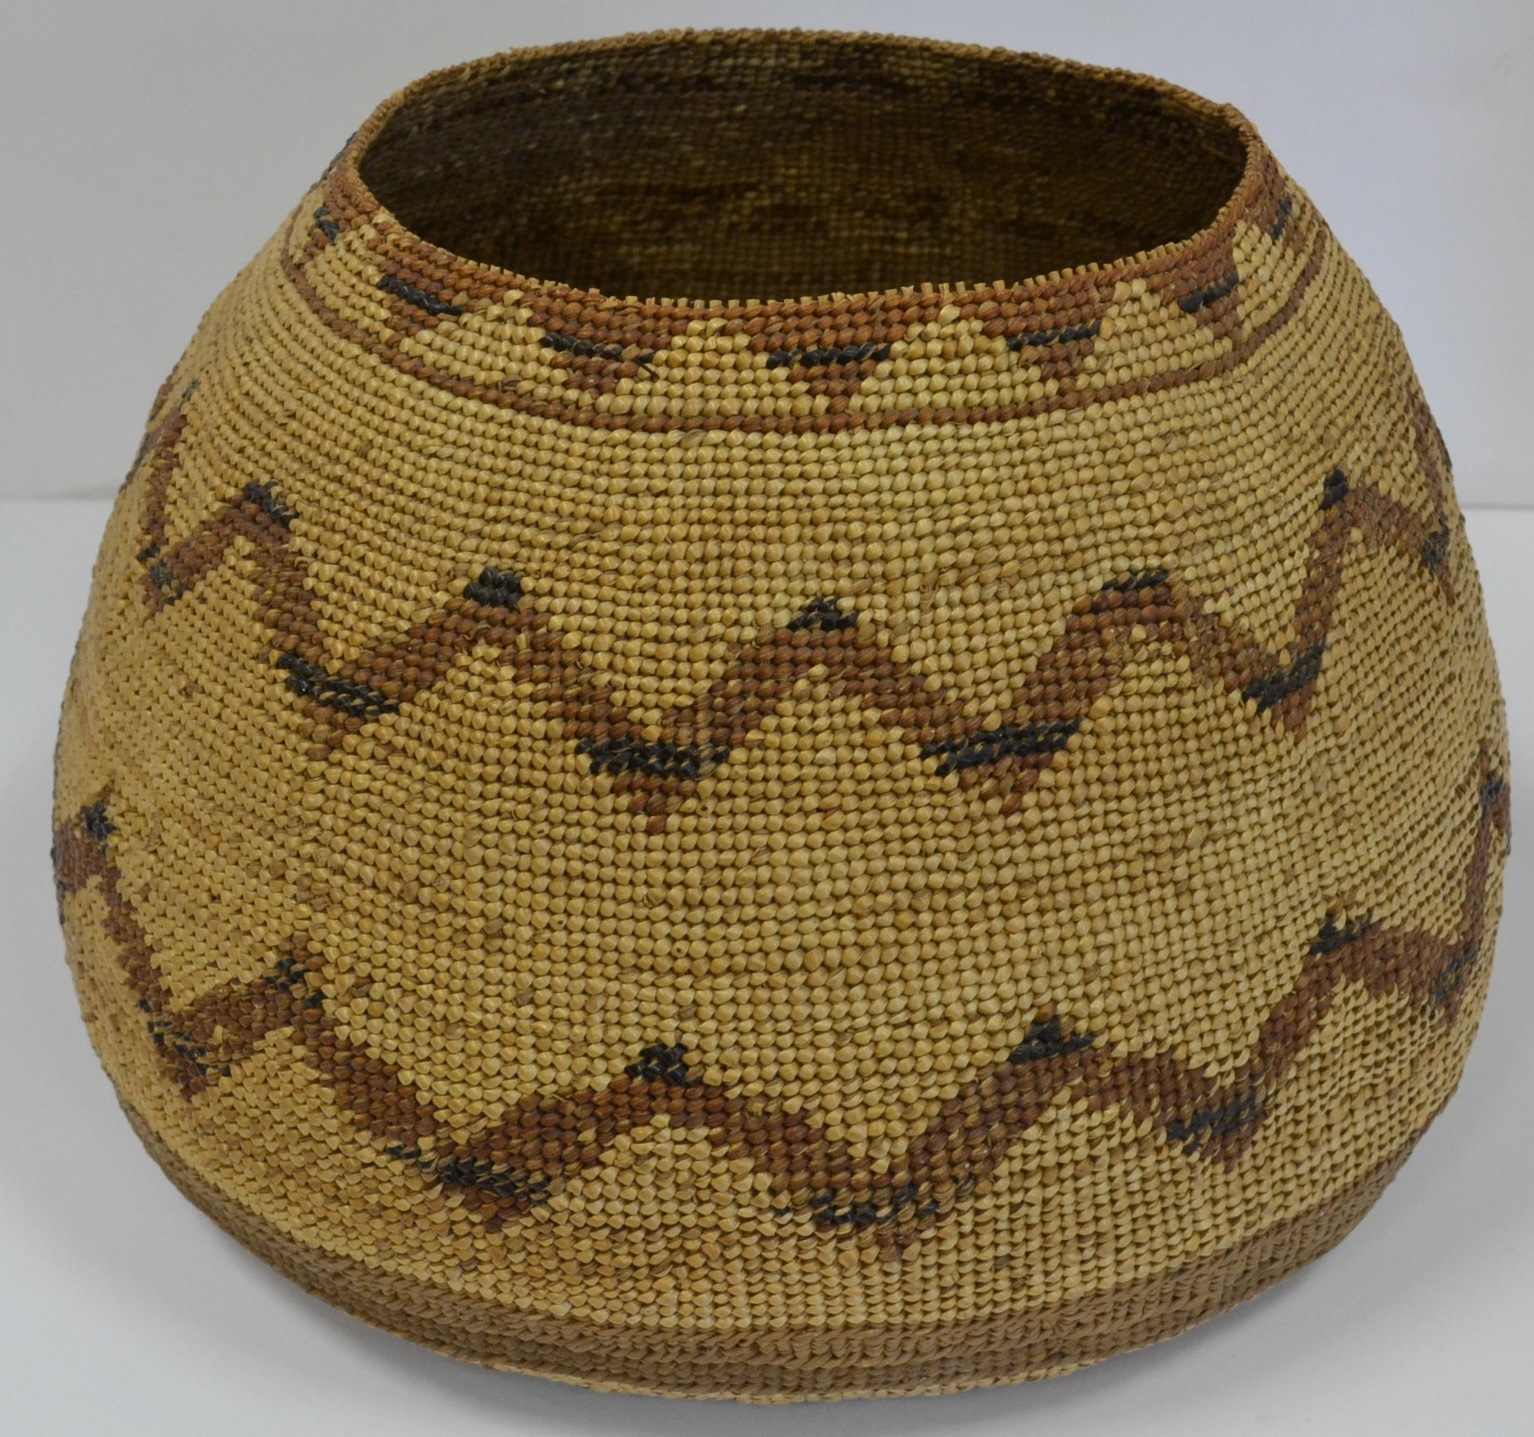 hupa area woven basket antique indian baskets